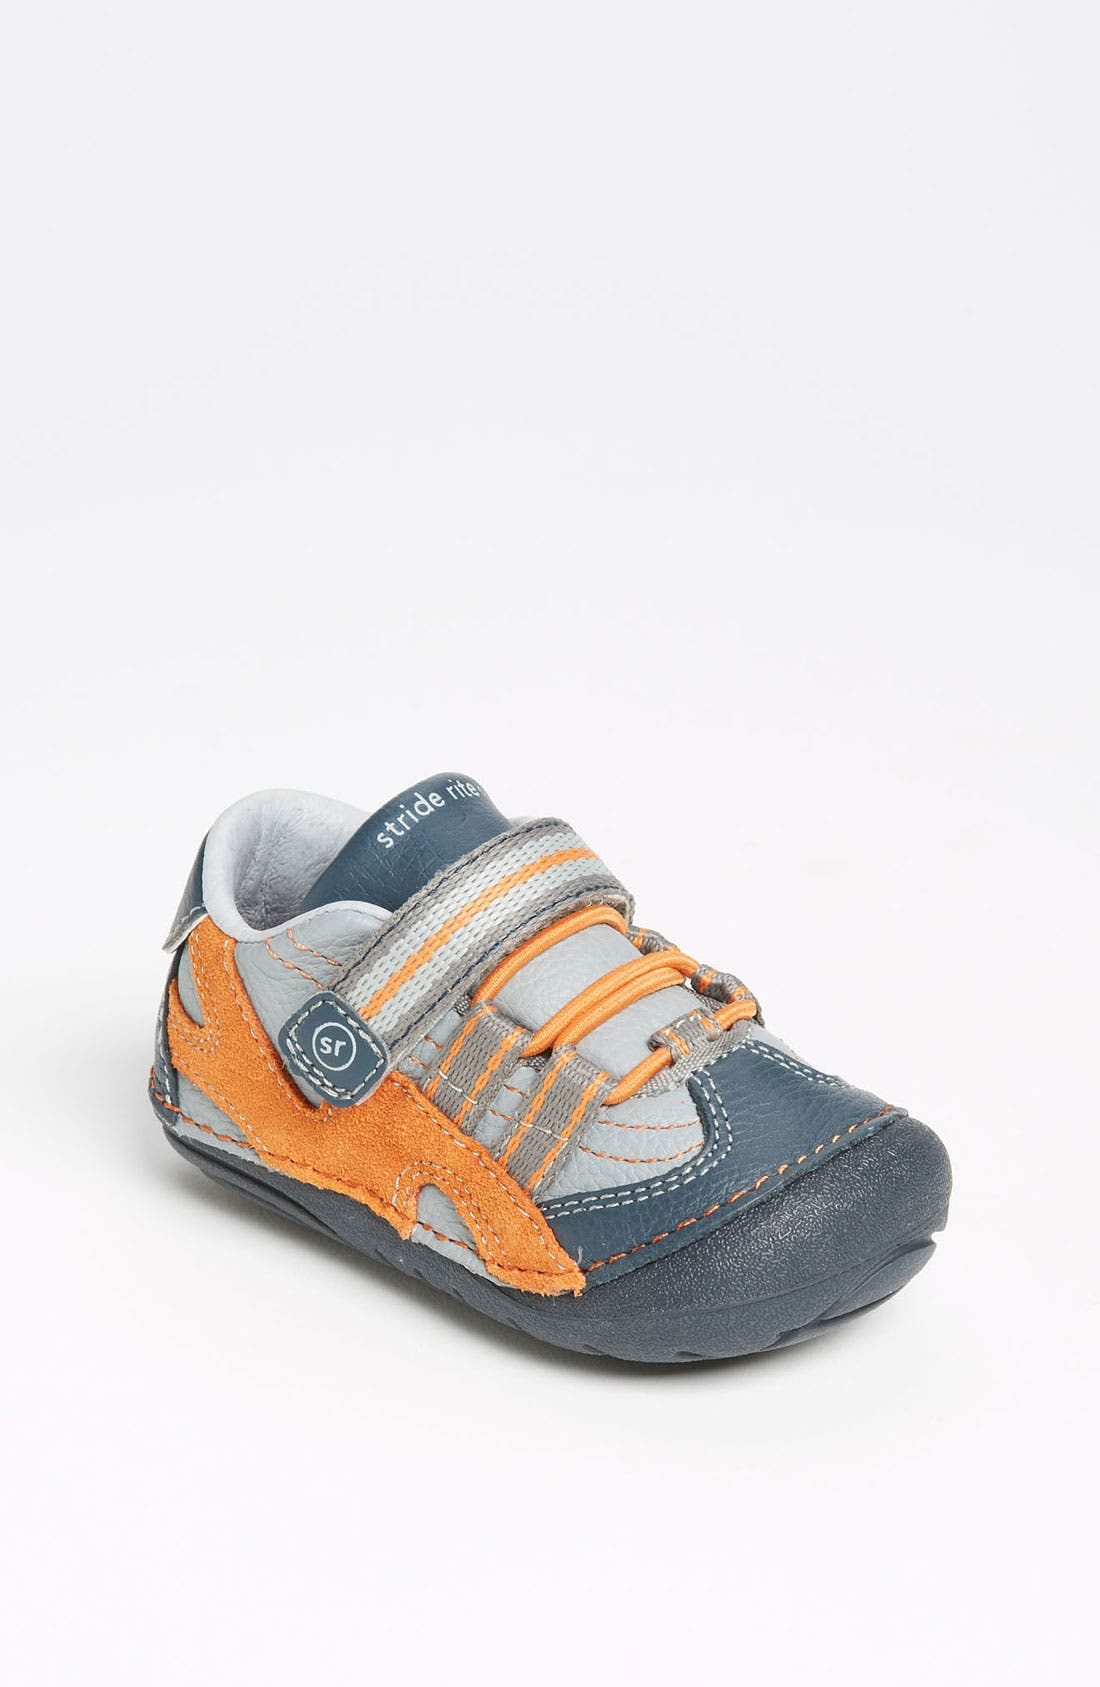 Alternate Image 1 Selected - Stride Rite 'Leo' Sneaker (Baby & Walker)